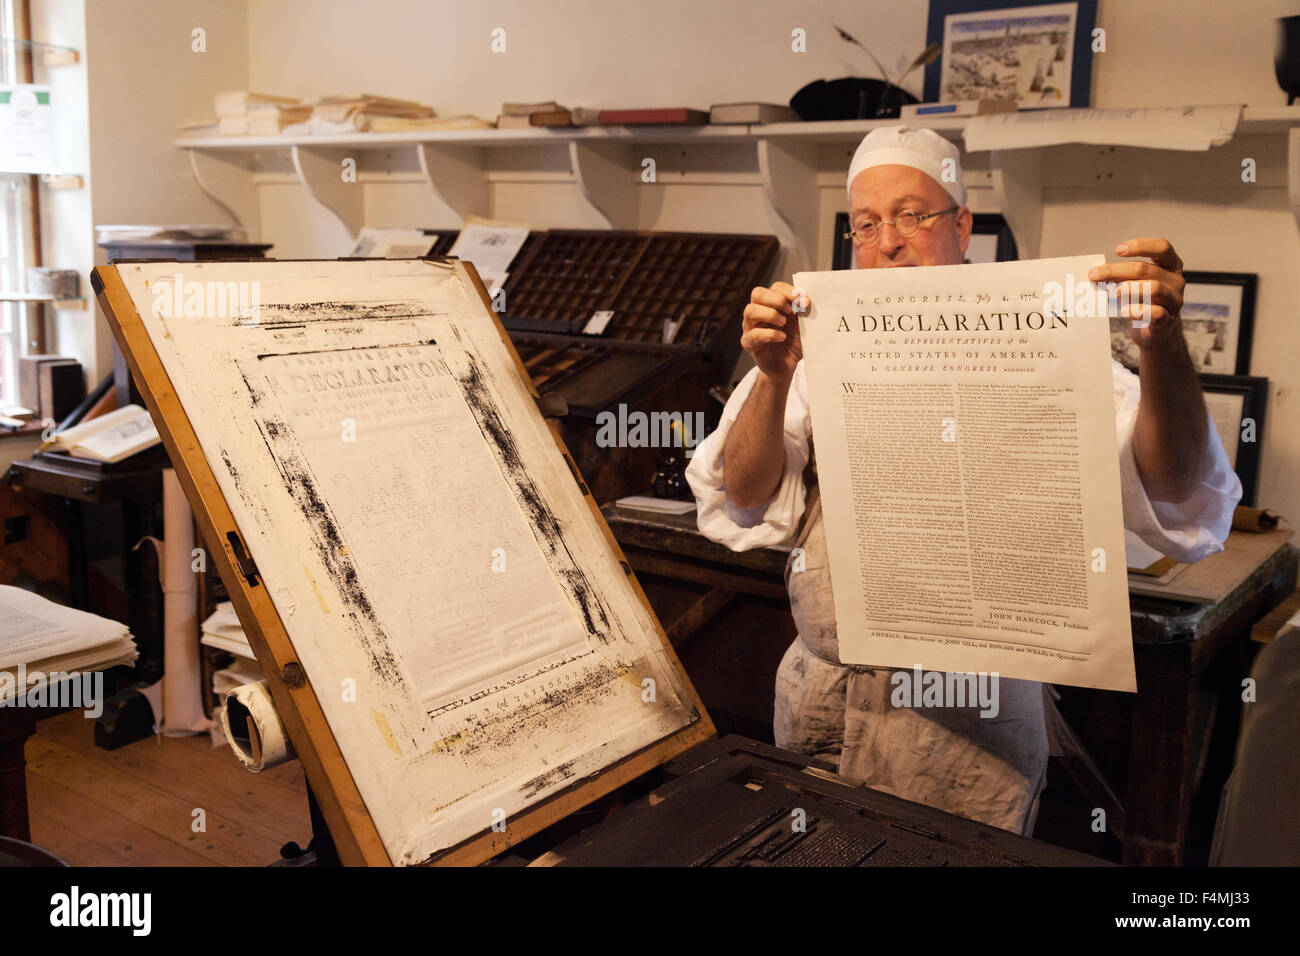 18th century printing techniques at The Printing Office of Edes and Gill, patriot printers of the Revolution, Boston - Stock Image